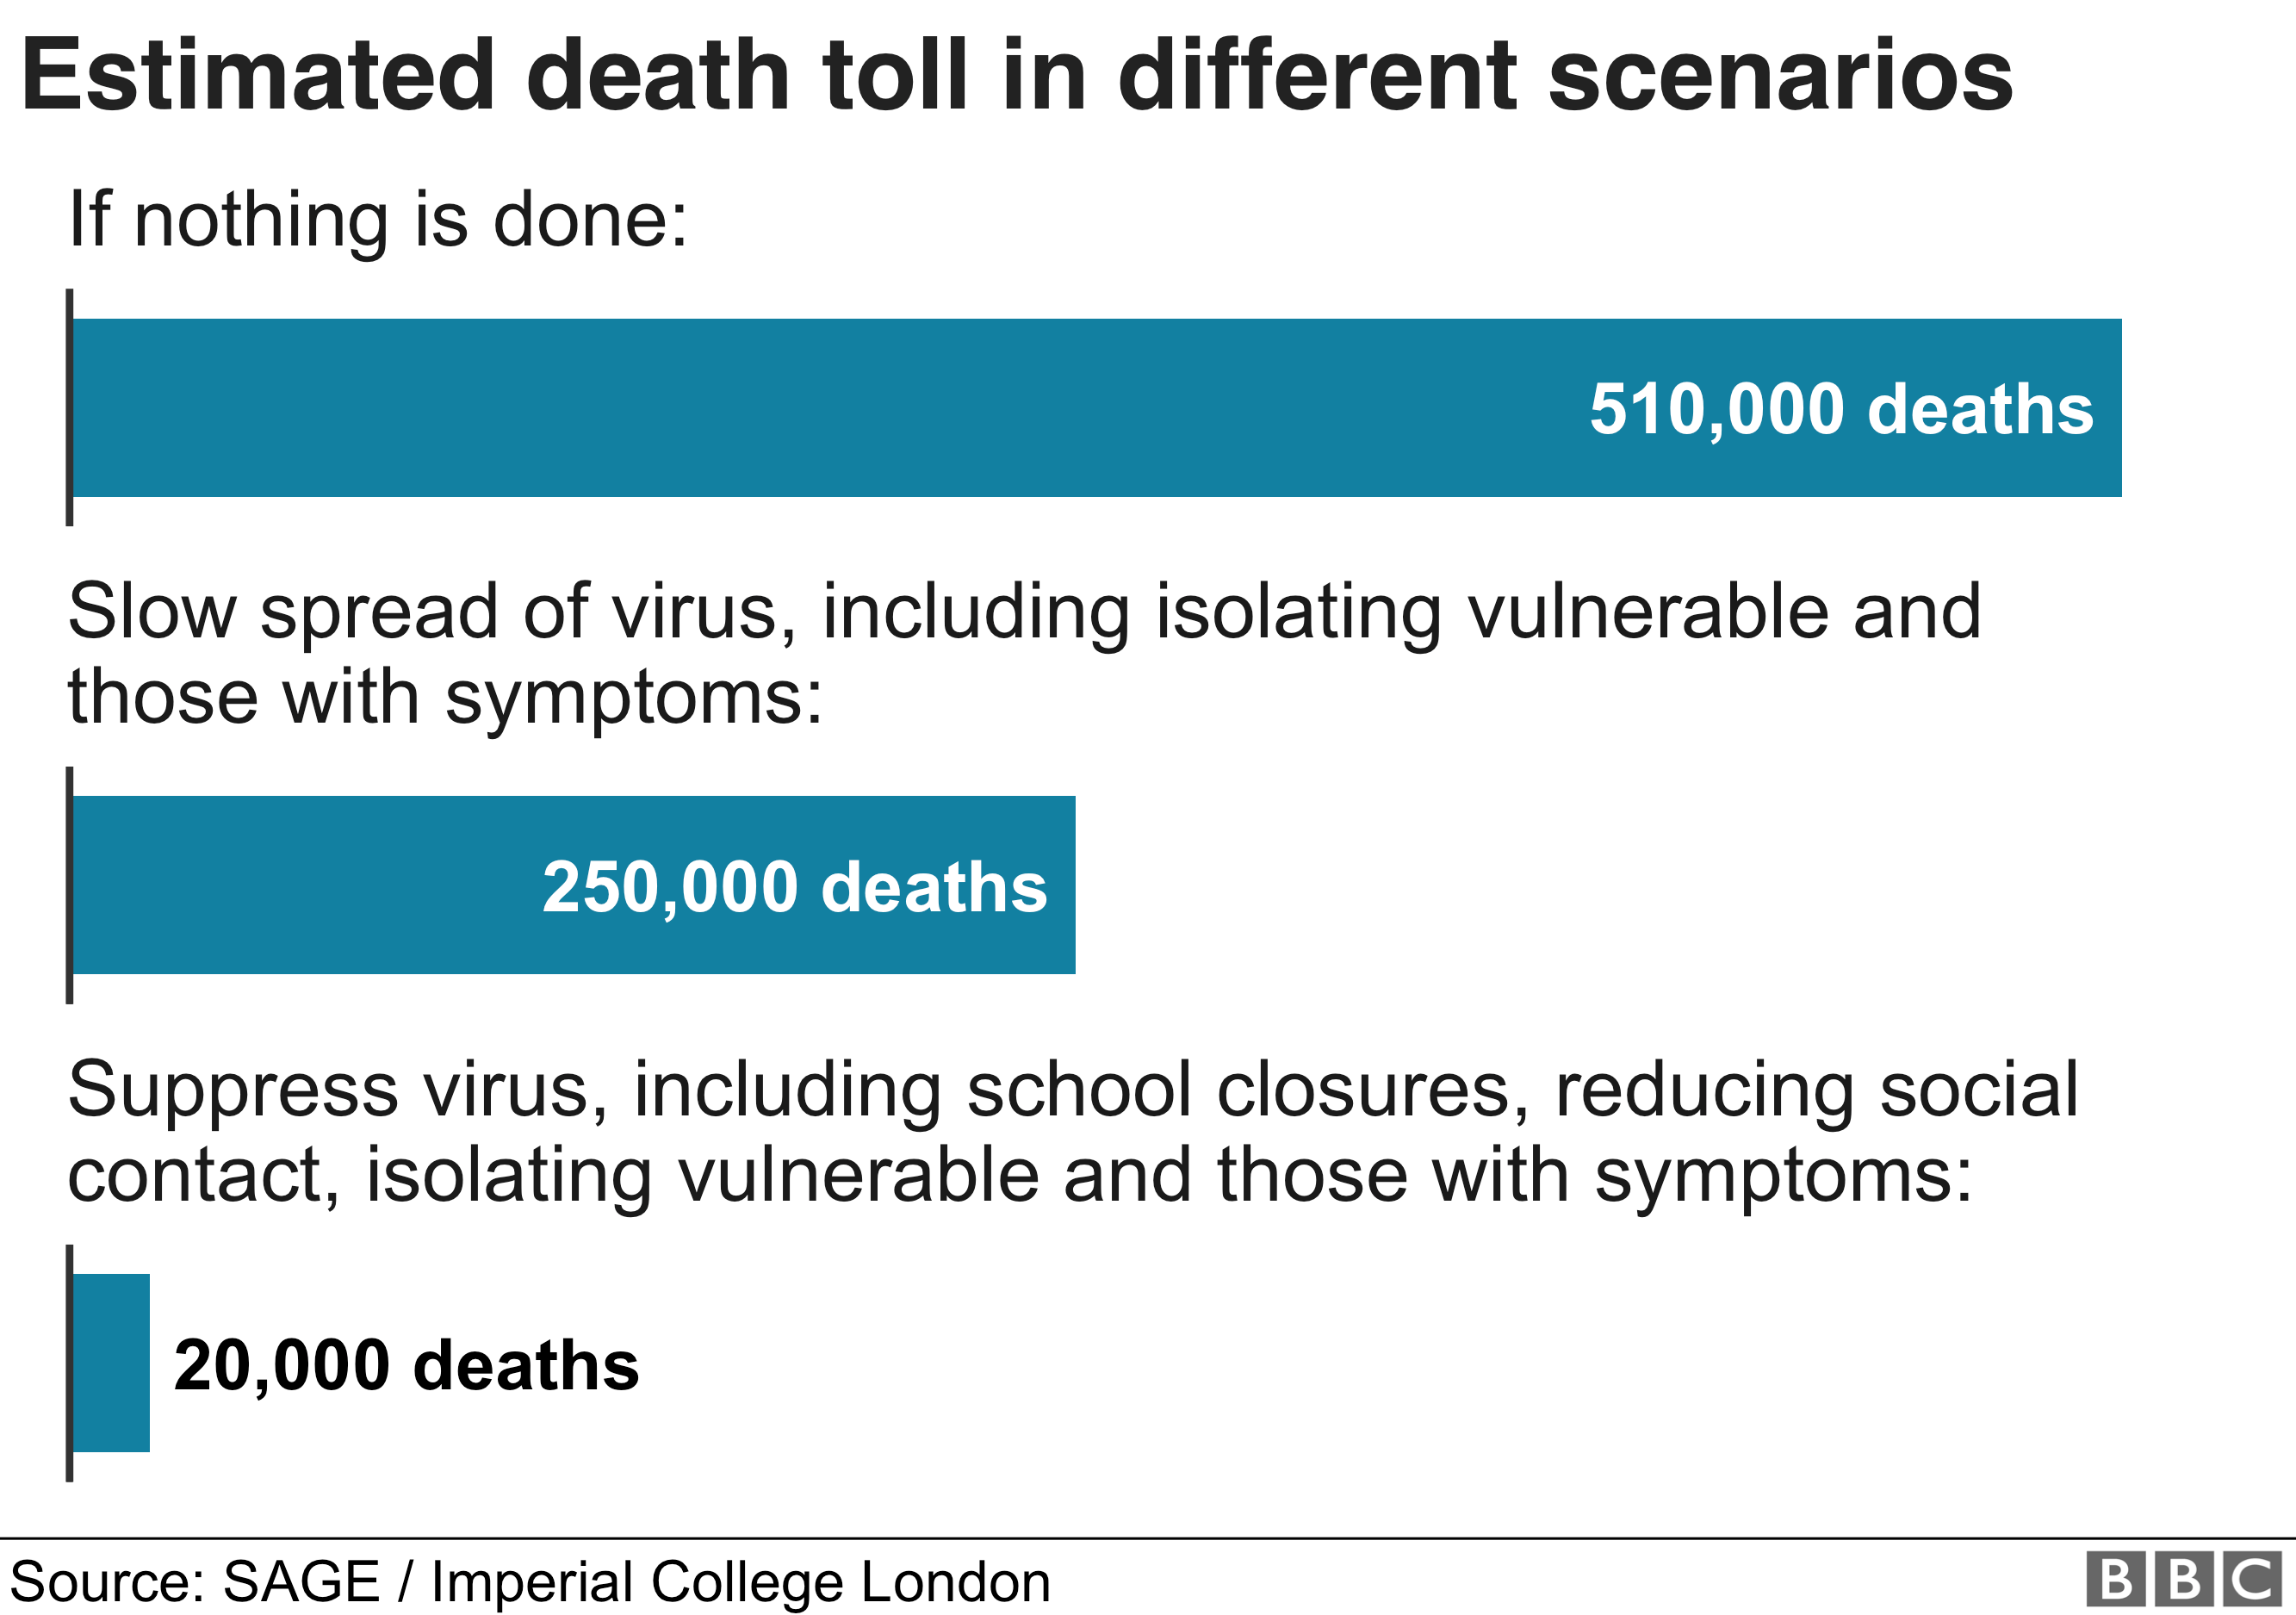 Chart showing the estimated death toll from coronavirus in different scenarios